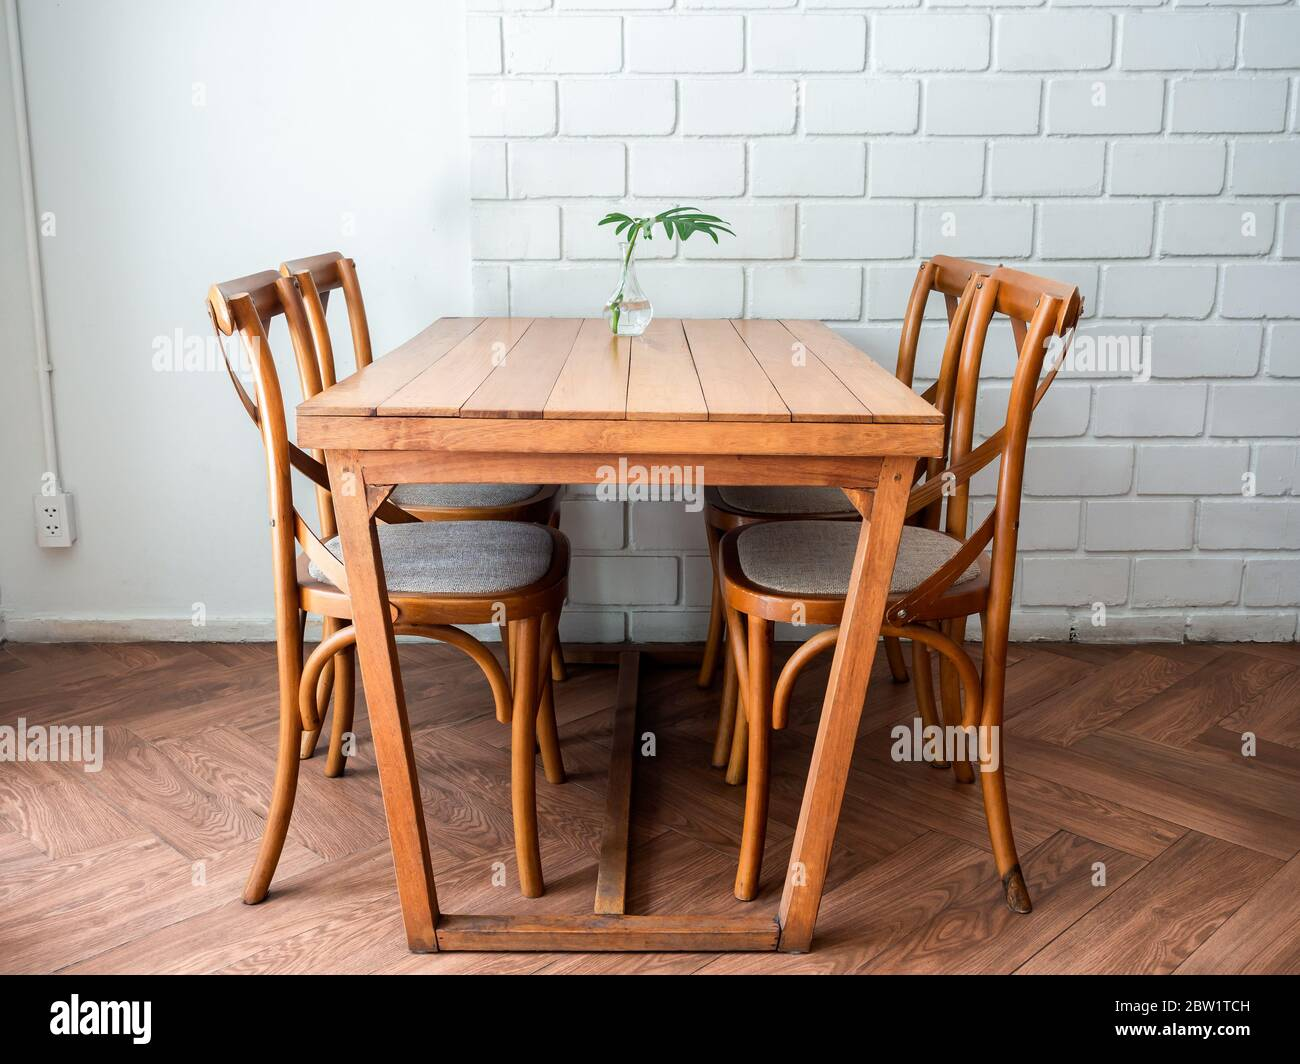 Wooden Dining Table And Four Chairs With Green Leaf In Glass Vase On White Wall Background In Restaurant Stock Photo Alamy